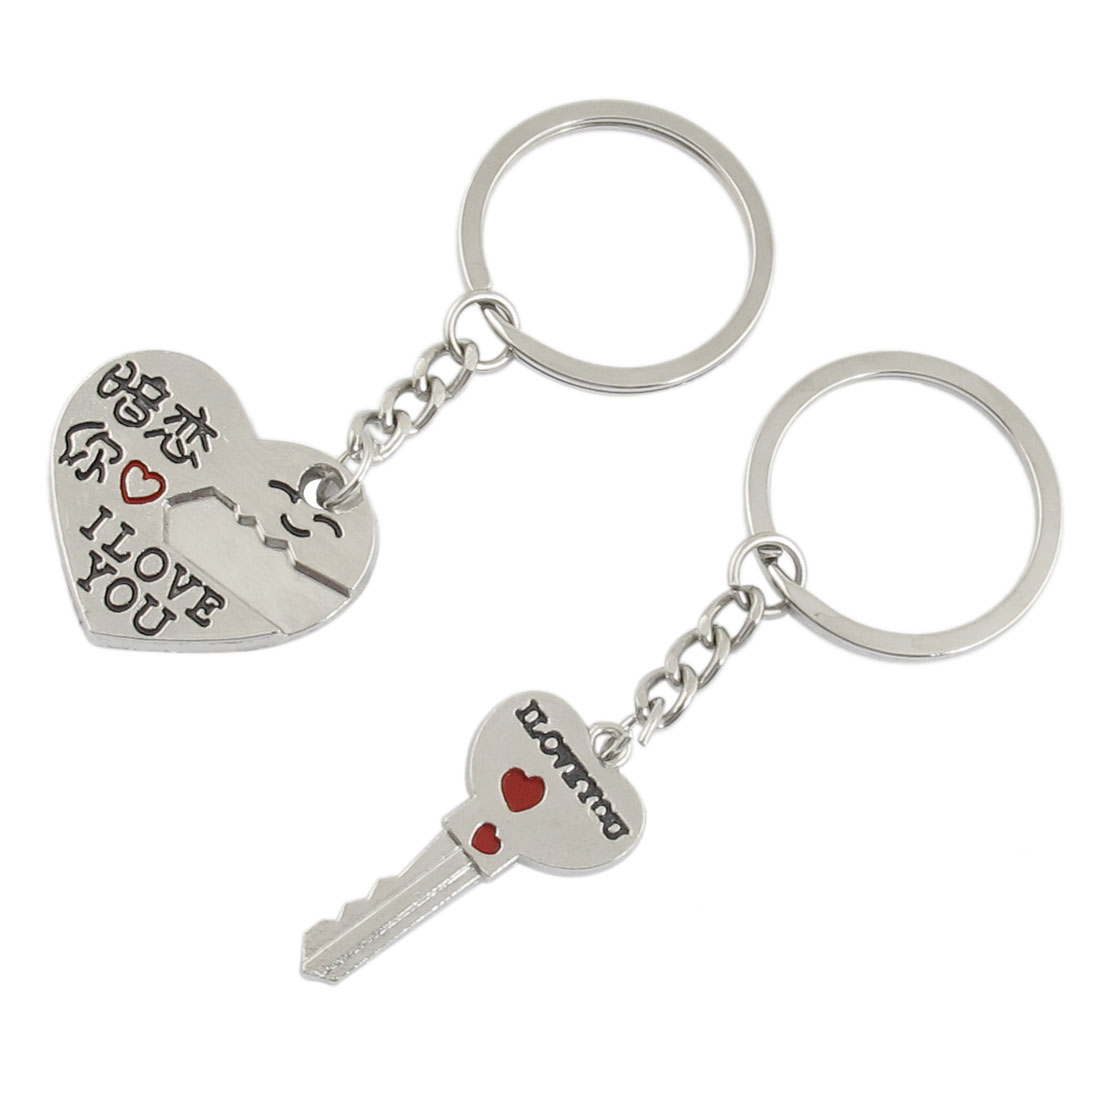 2 Pcs Lover Lock Key Heart Dangling Pendant Keyring Keychain Key Holder